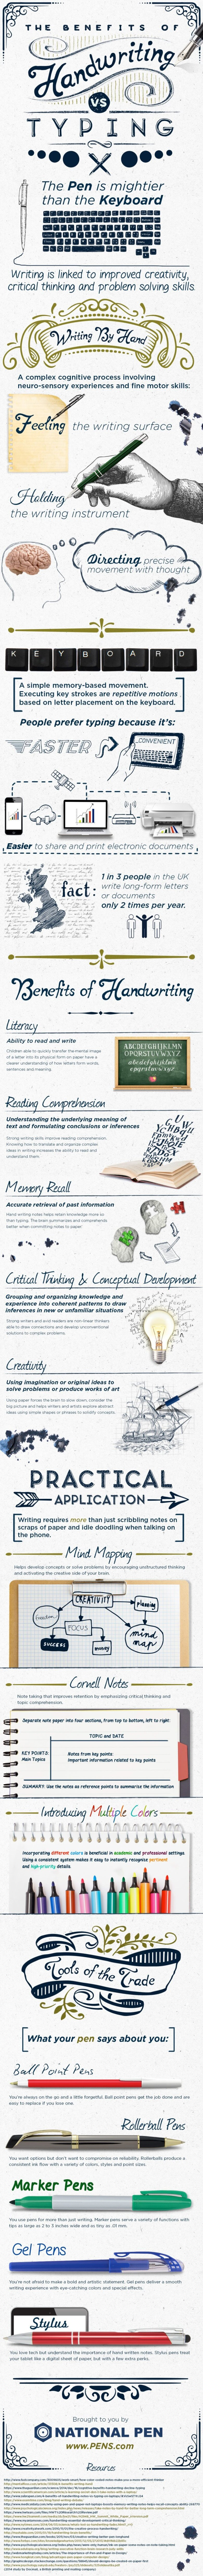 The Benefits of Handwriting vs Typing - Infographic